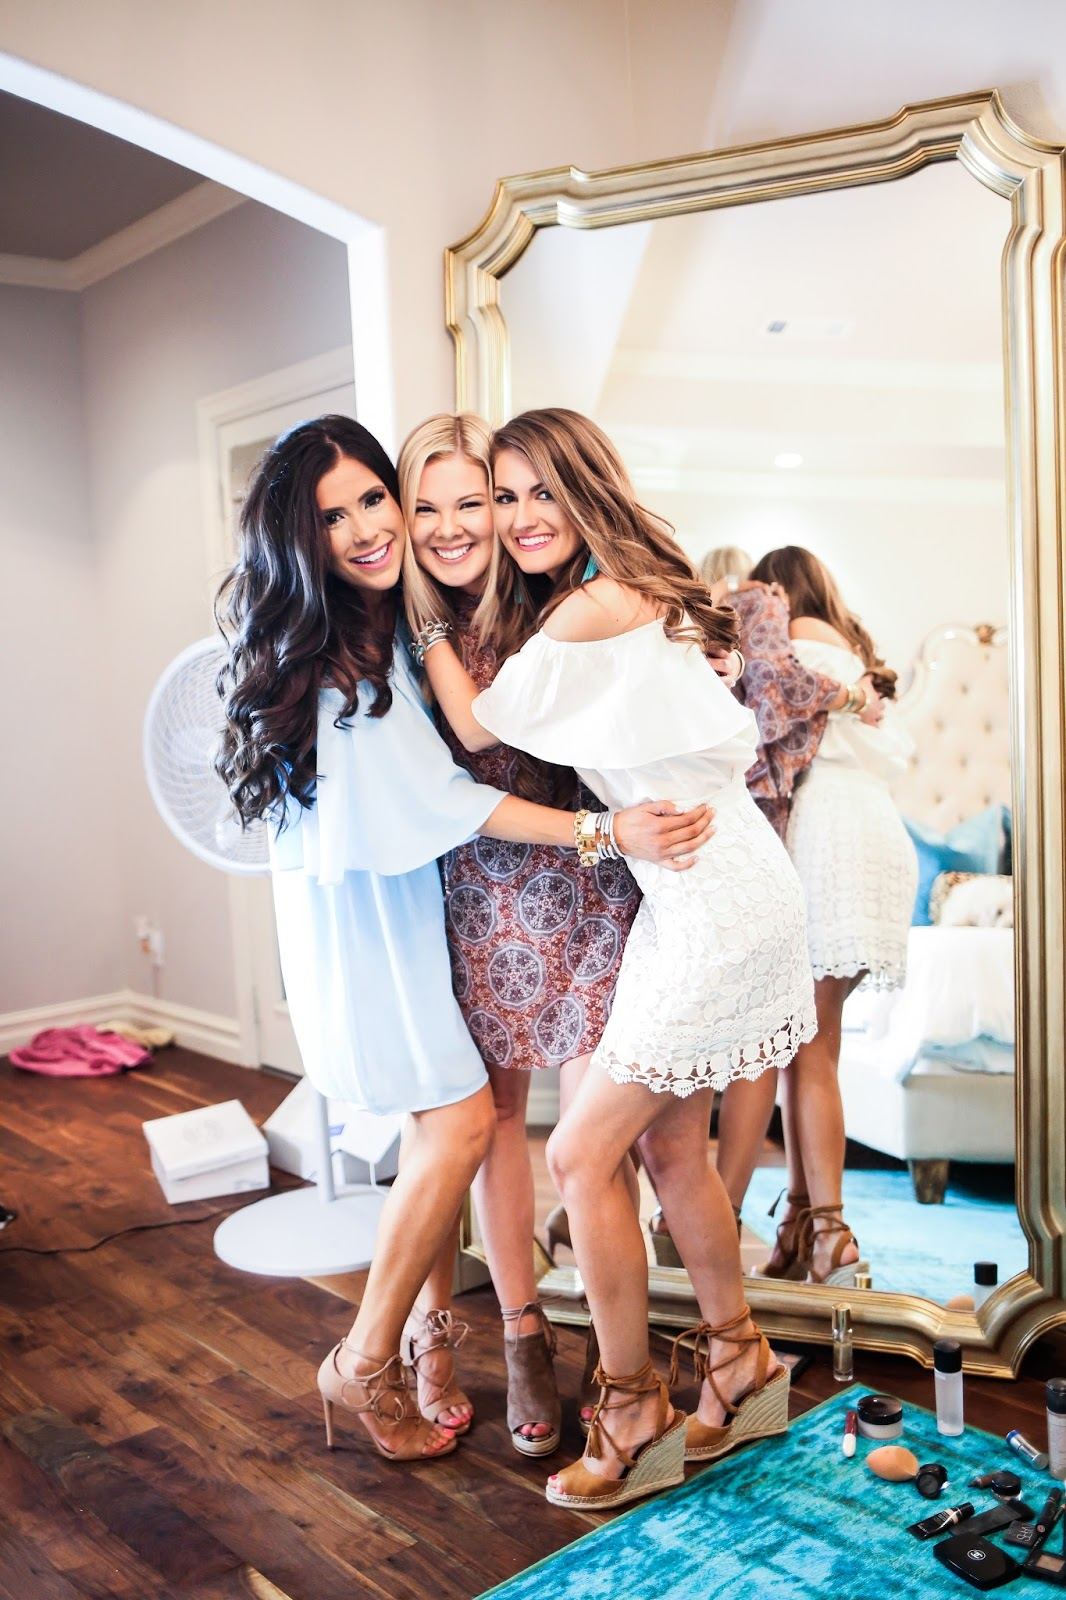 beauty must haves for girls night out the sweetest thing bloglovin. Black Bedroom Furniture Sets. Home Design Ideas